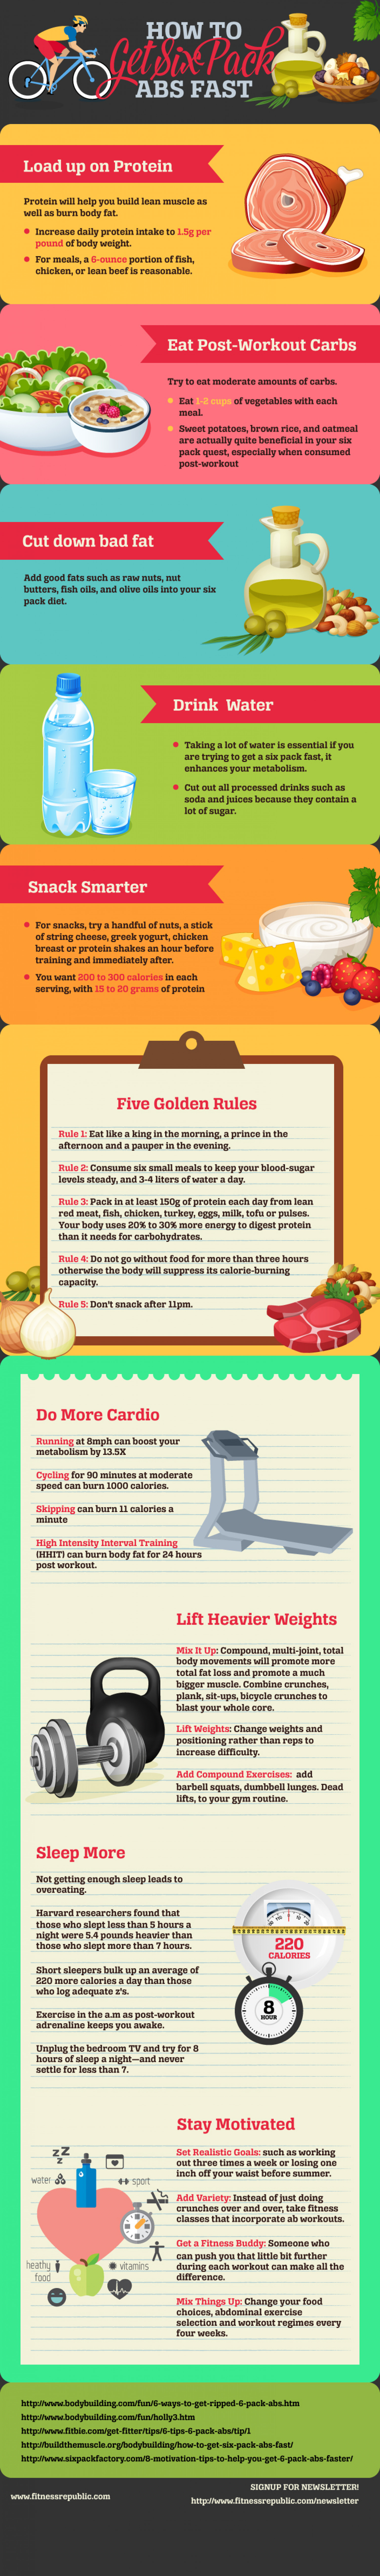 How to Get Six Pack Abs Fast Infographic